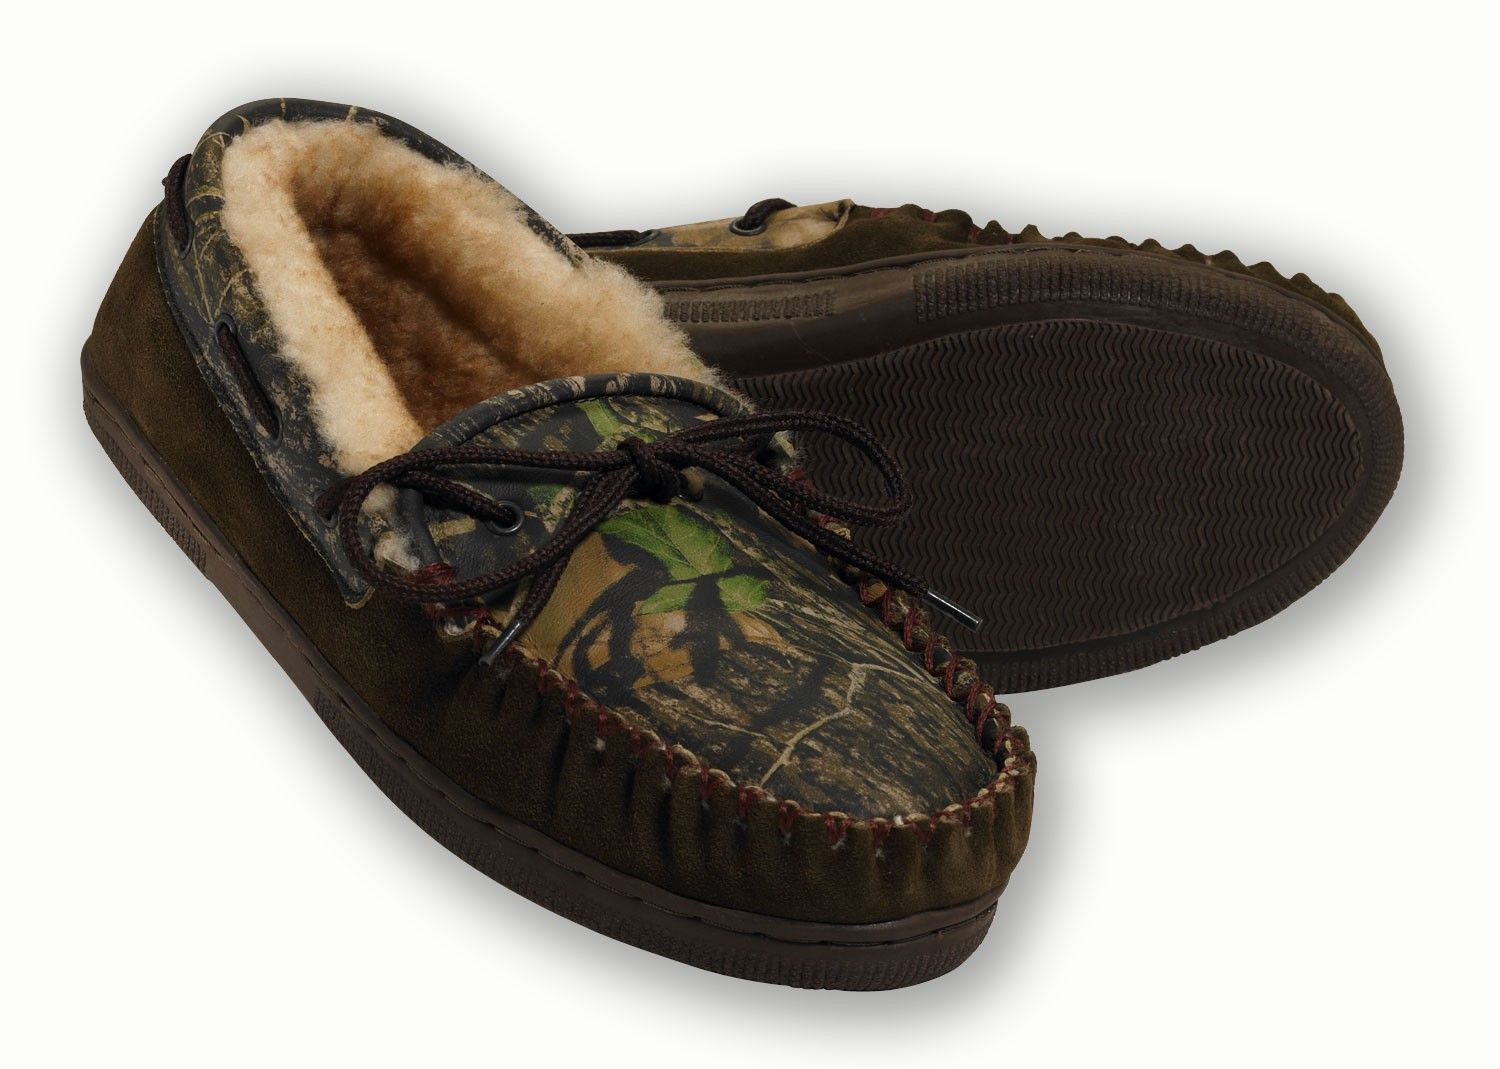 Camo Men 39 S House Shoes Camo Love Pinterest Shoes Camo And Slippers